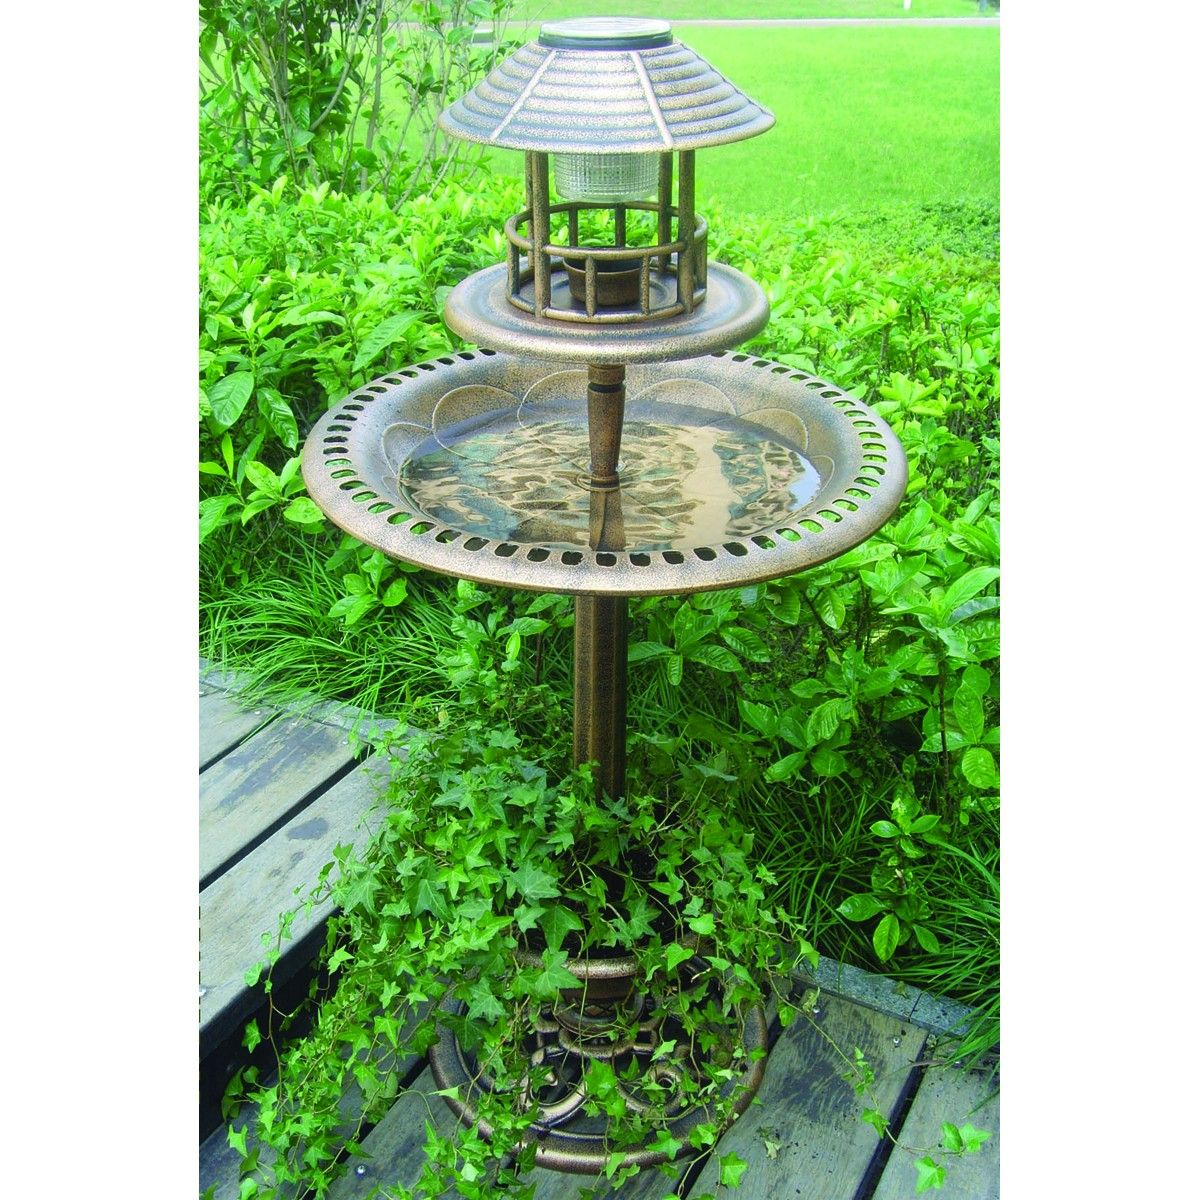 Patio Lights Harbor Freight: Spruce Up Your Yard Or Garden With The 4-in-1 Solar